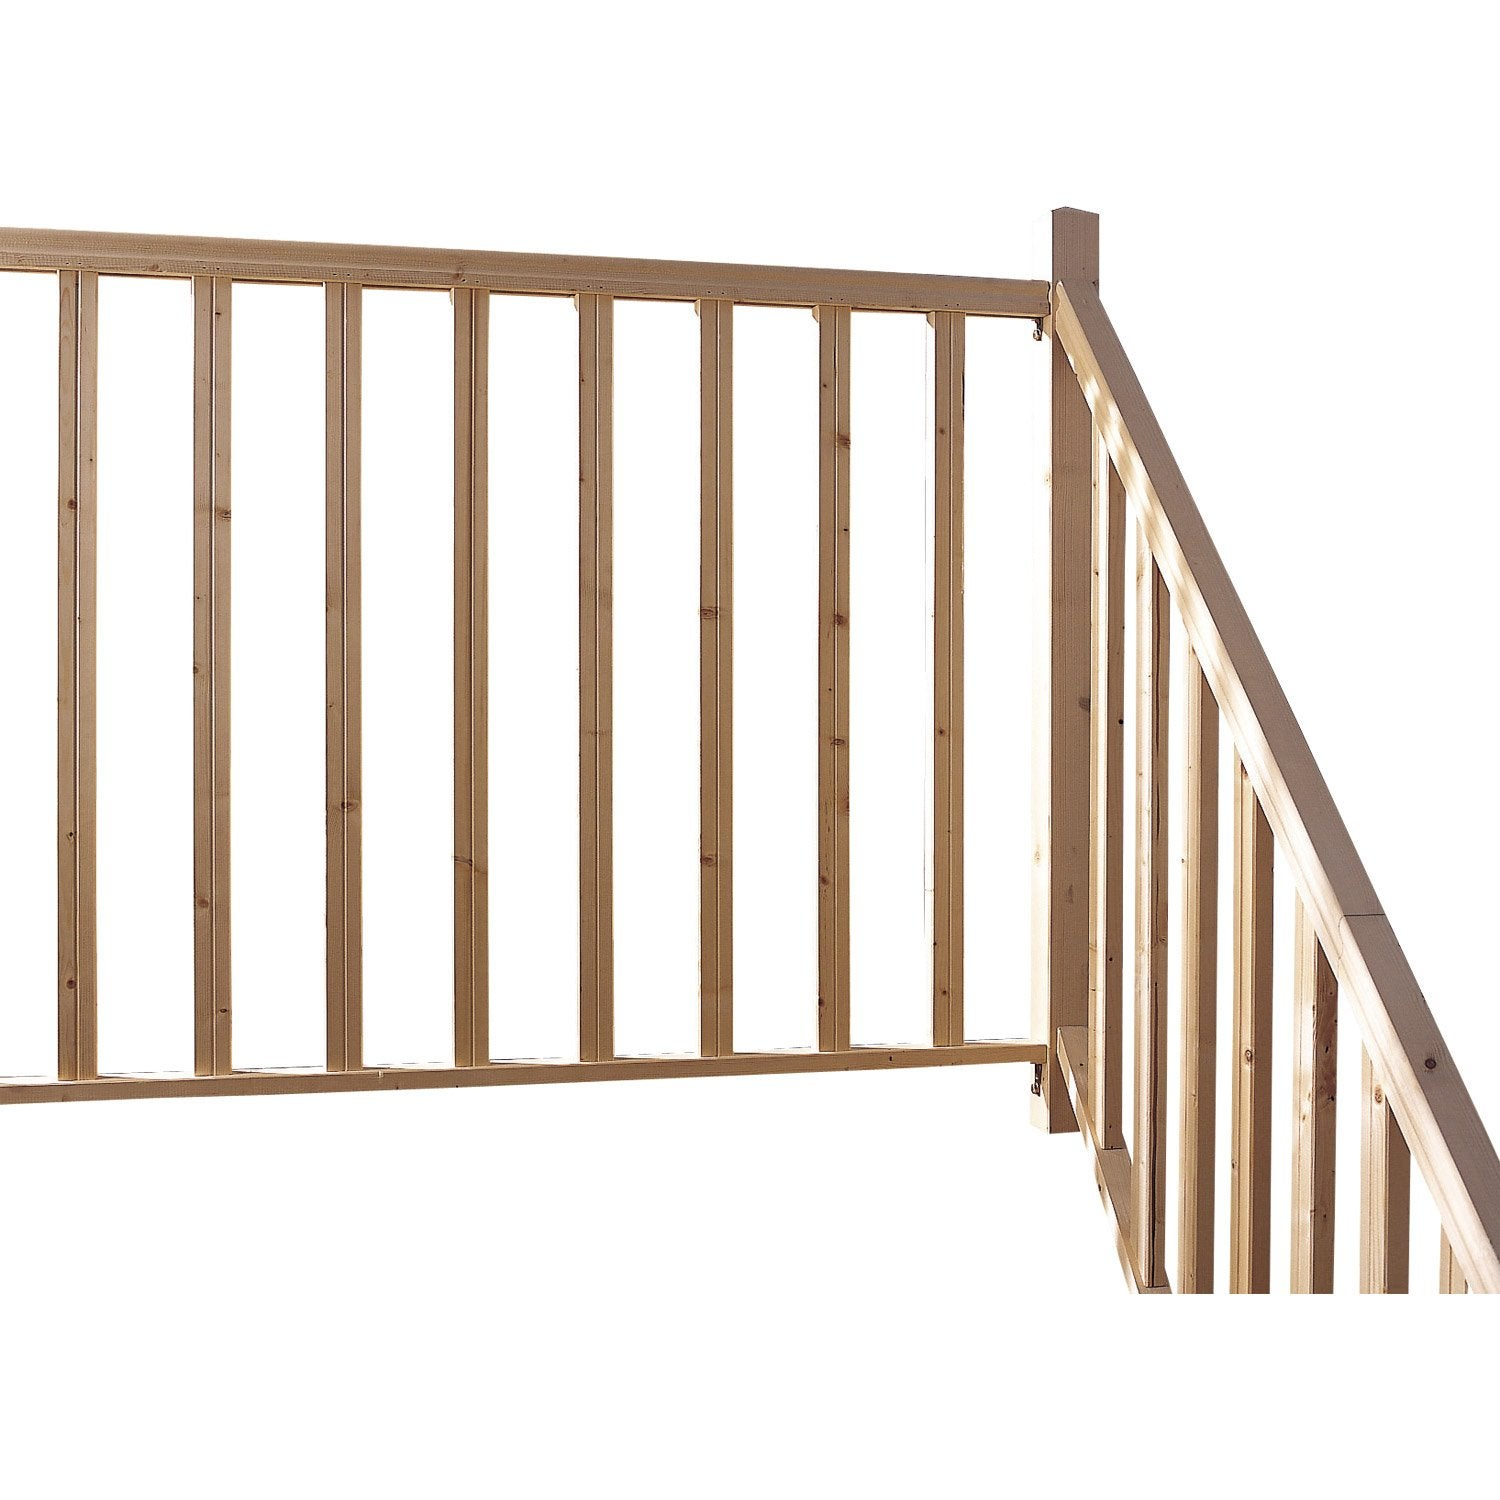 Kit city balustrade sapin 2m leroy merlin - Rampe escalier exterieur leroy merlin ...